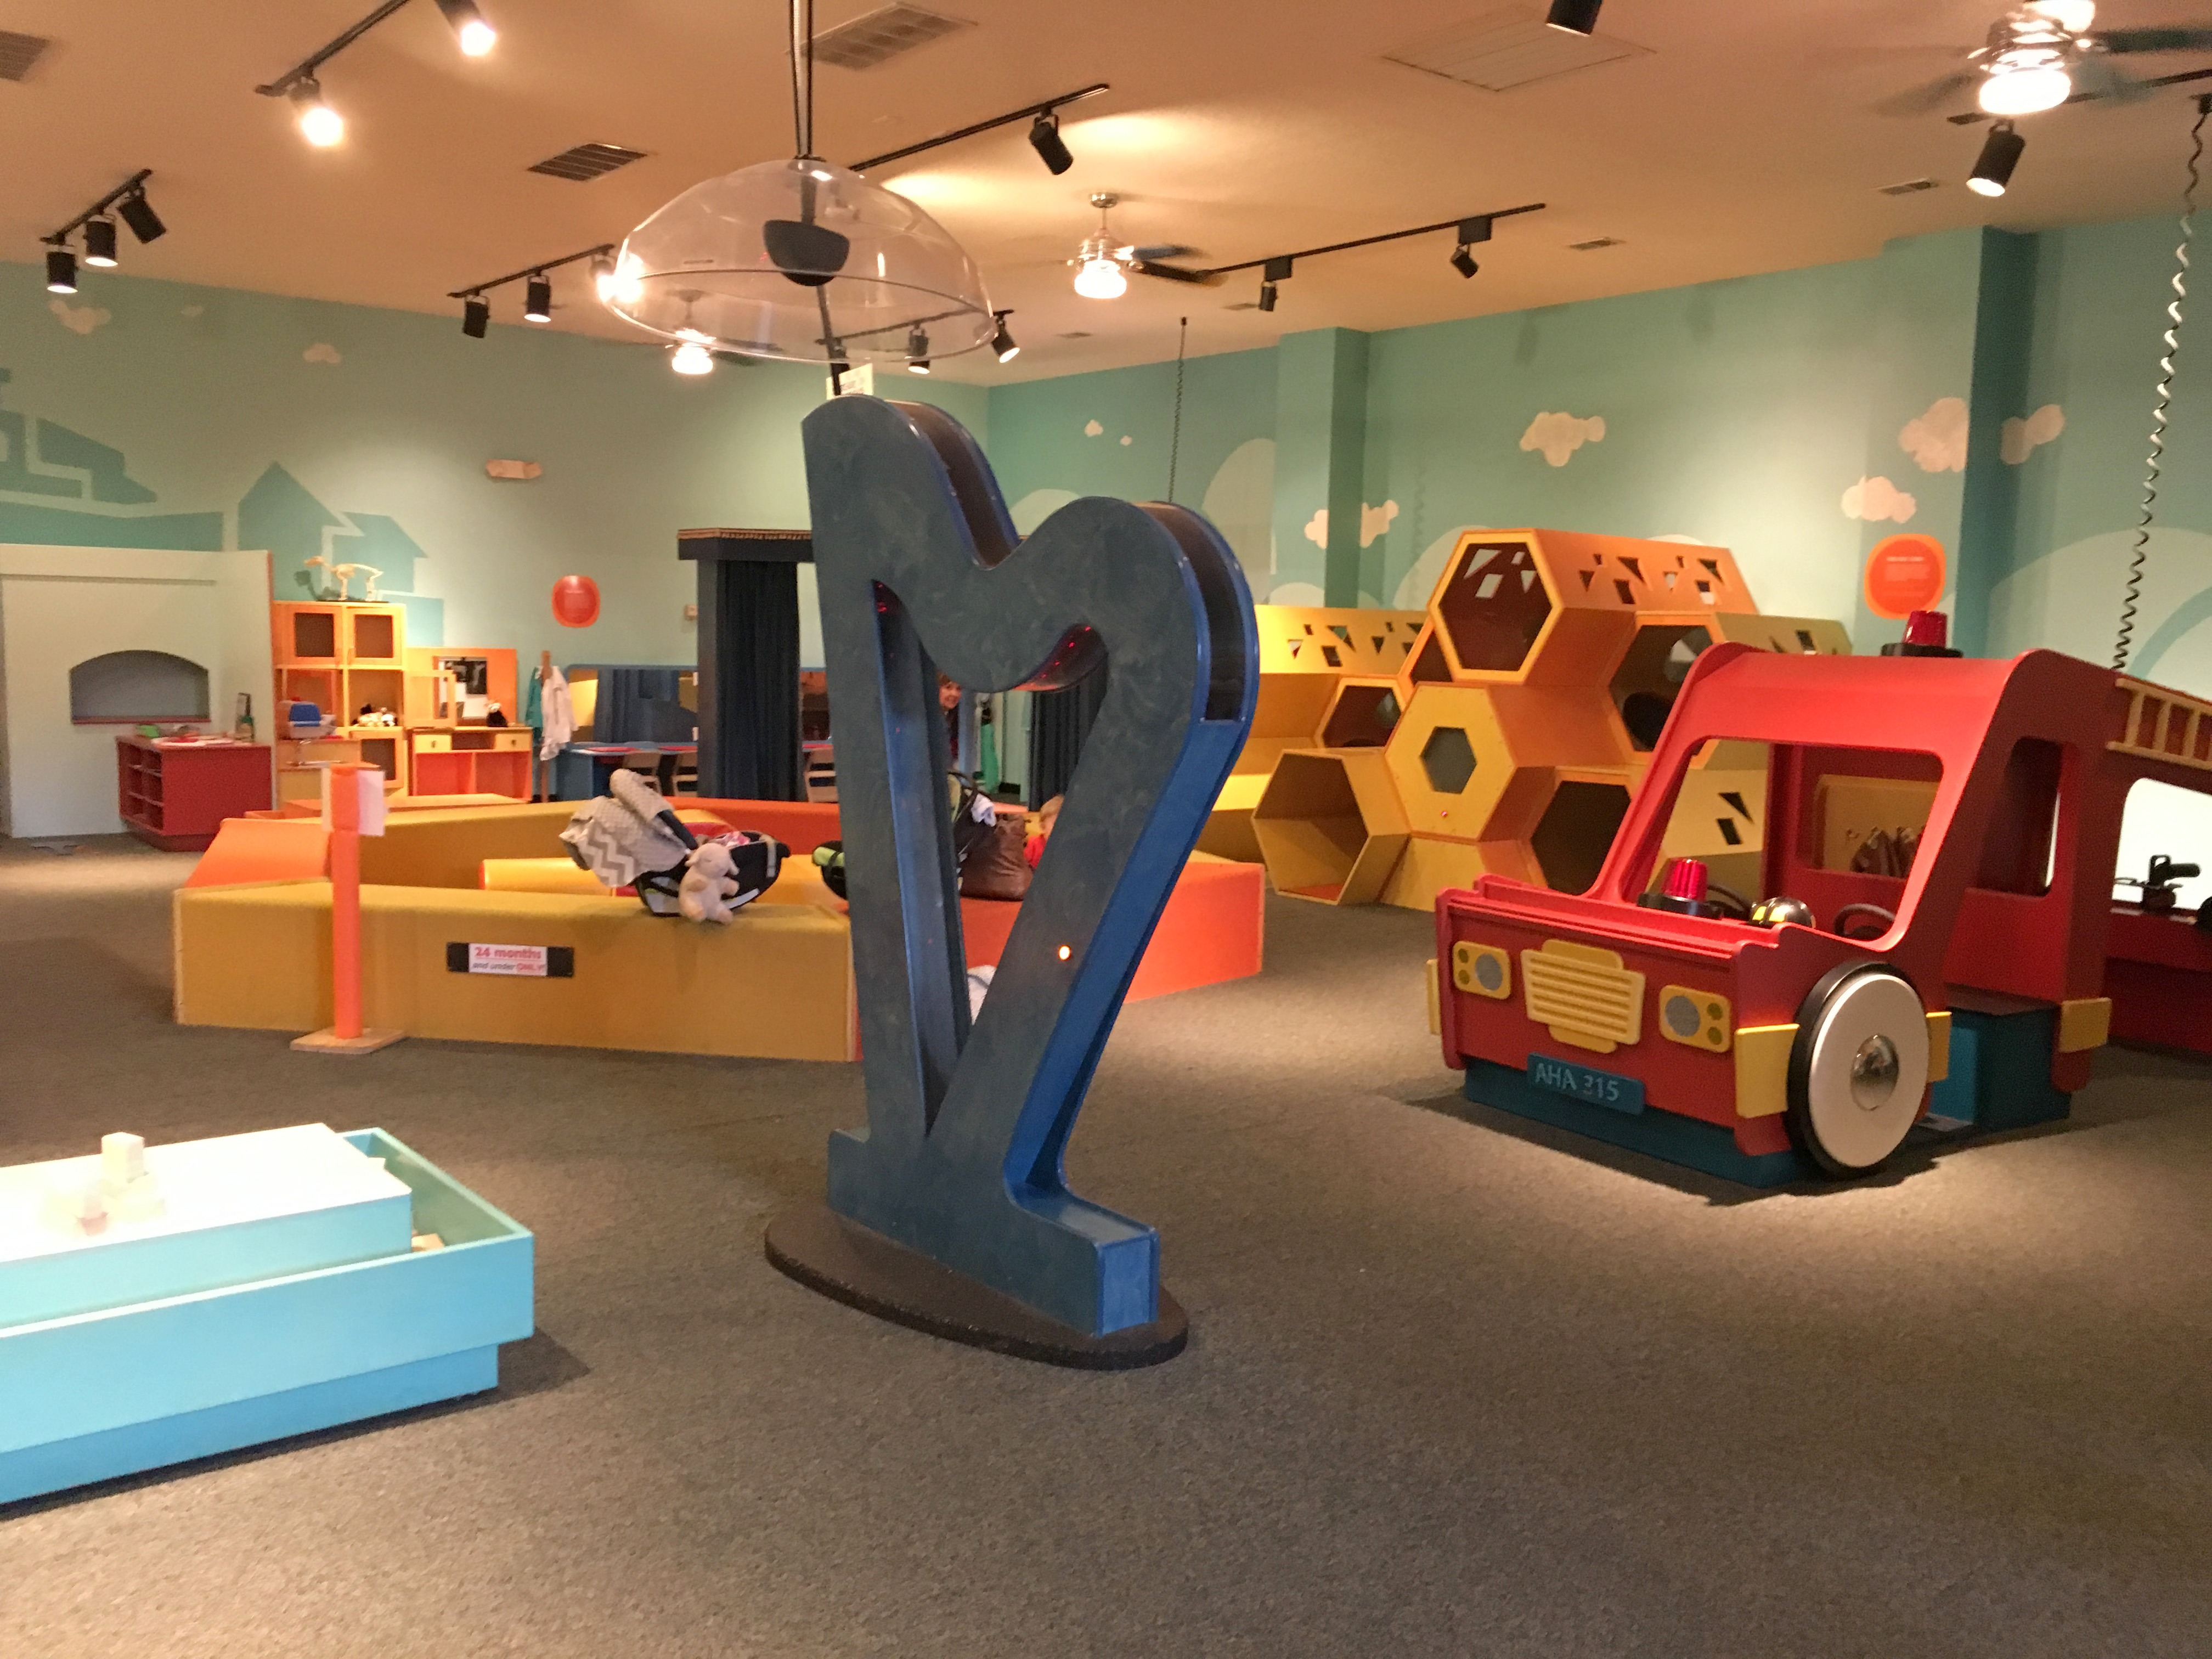 45 indoor play places and activities for kids around columbus for Cheap indoor play areas